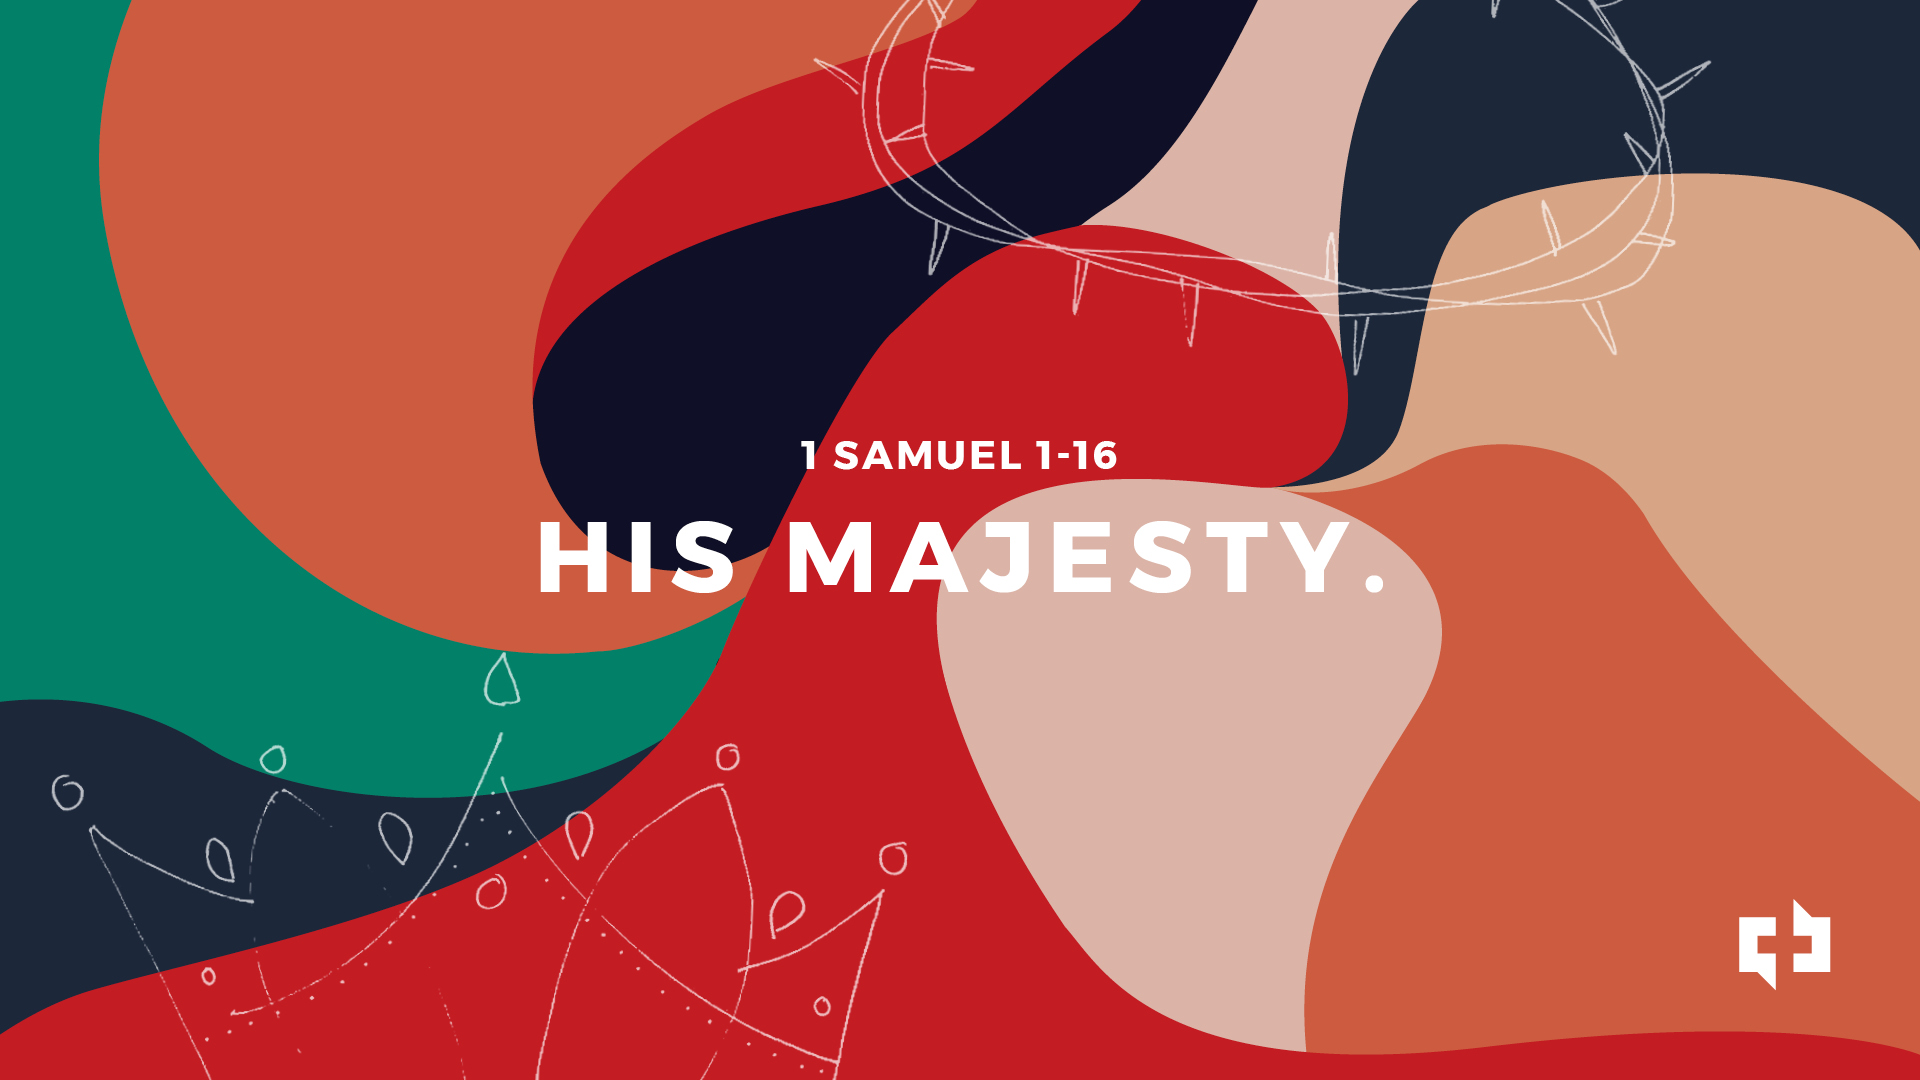 01 His Majesty-1 Samuel-Main